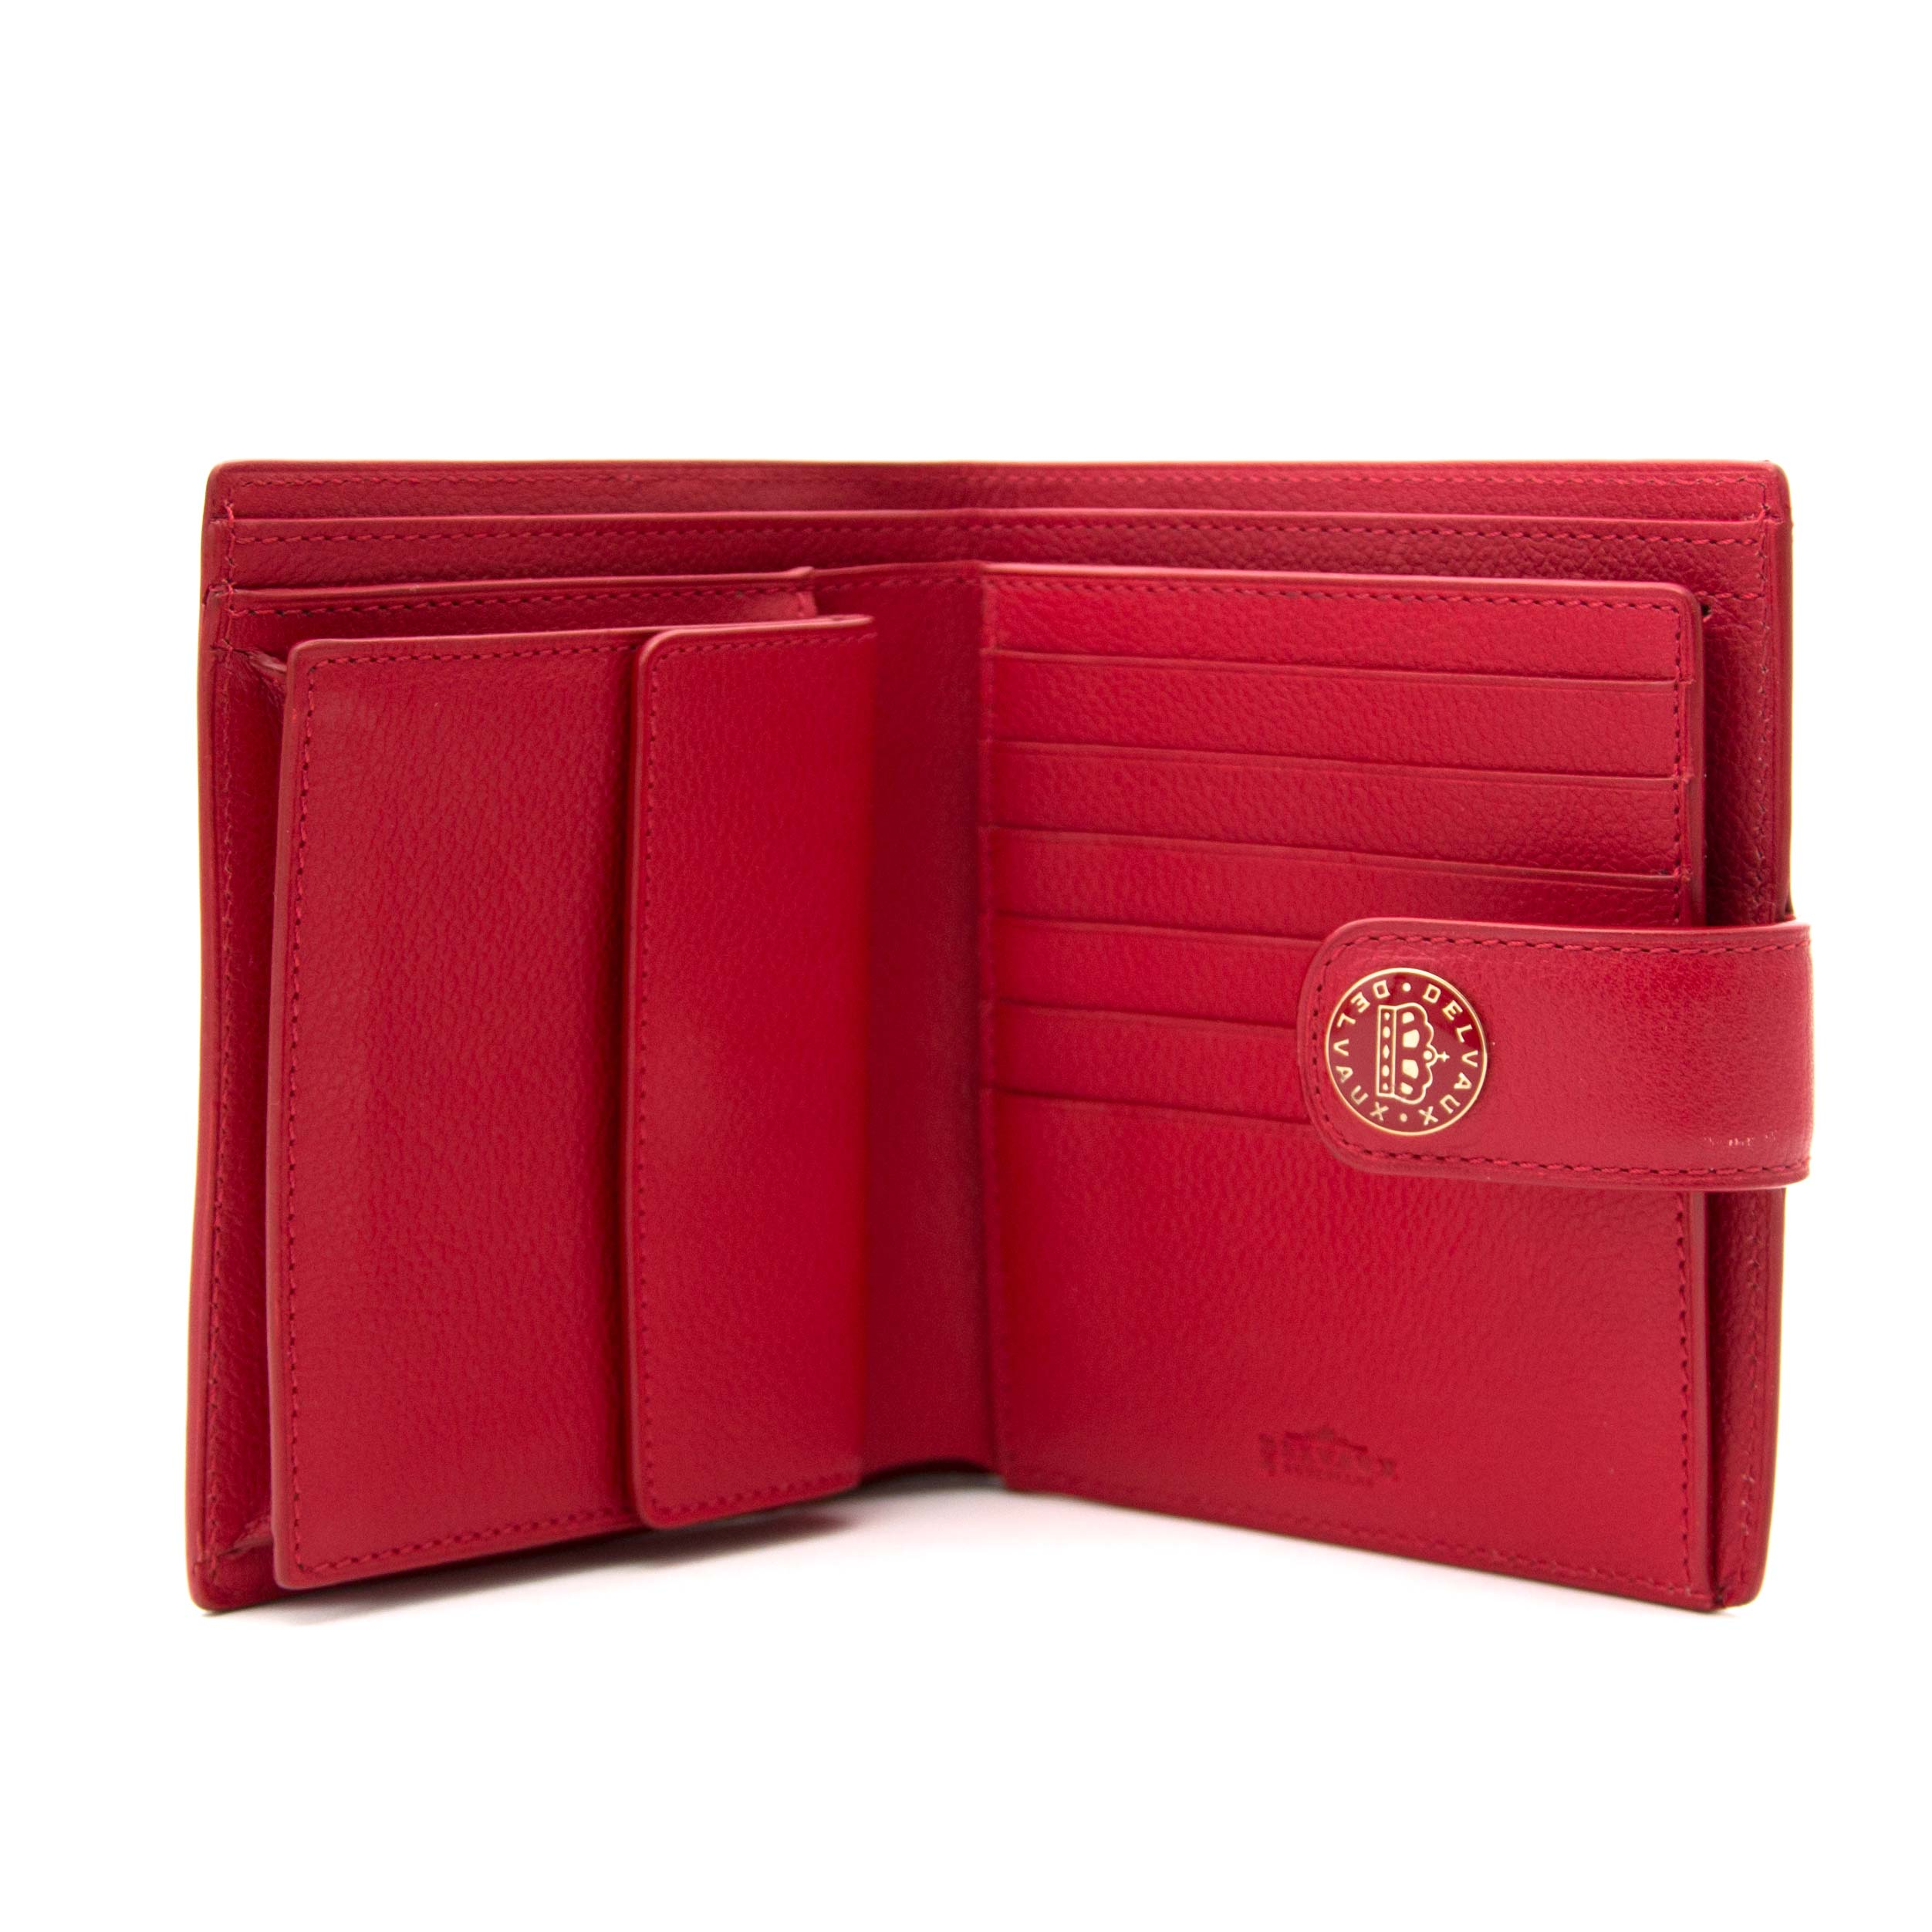 Delvaux Red Leather Wallet for sale online at Labellov